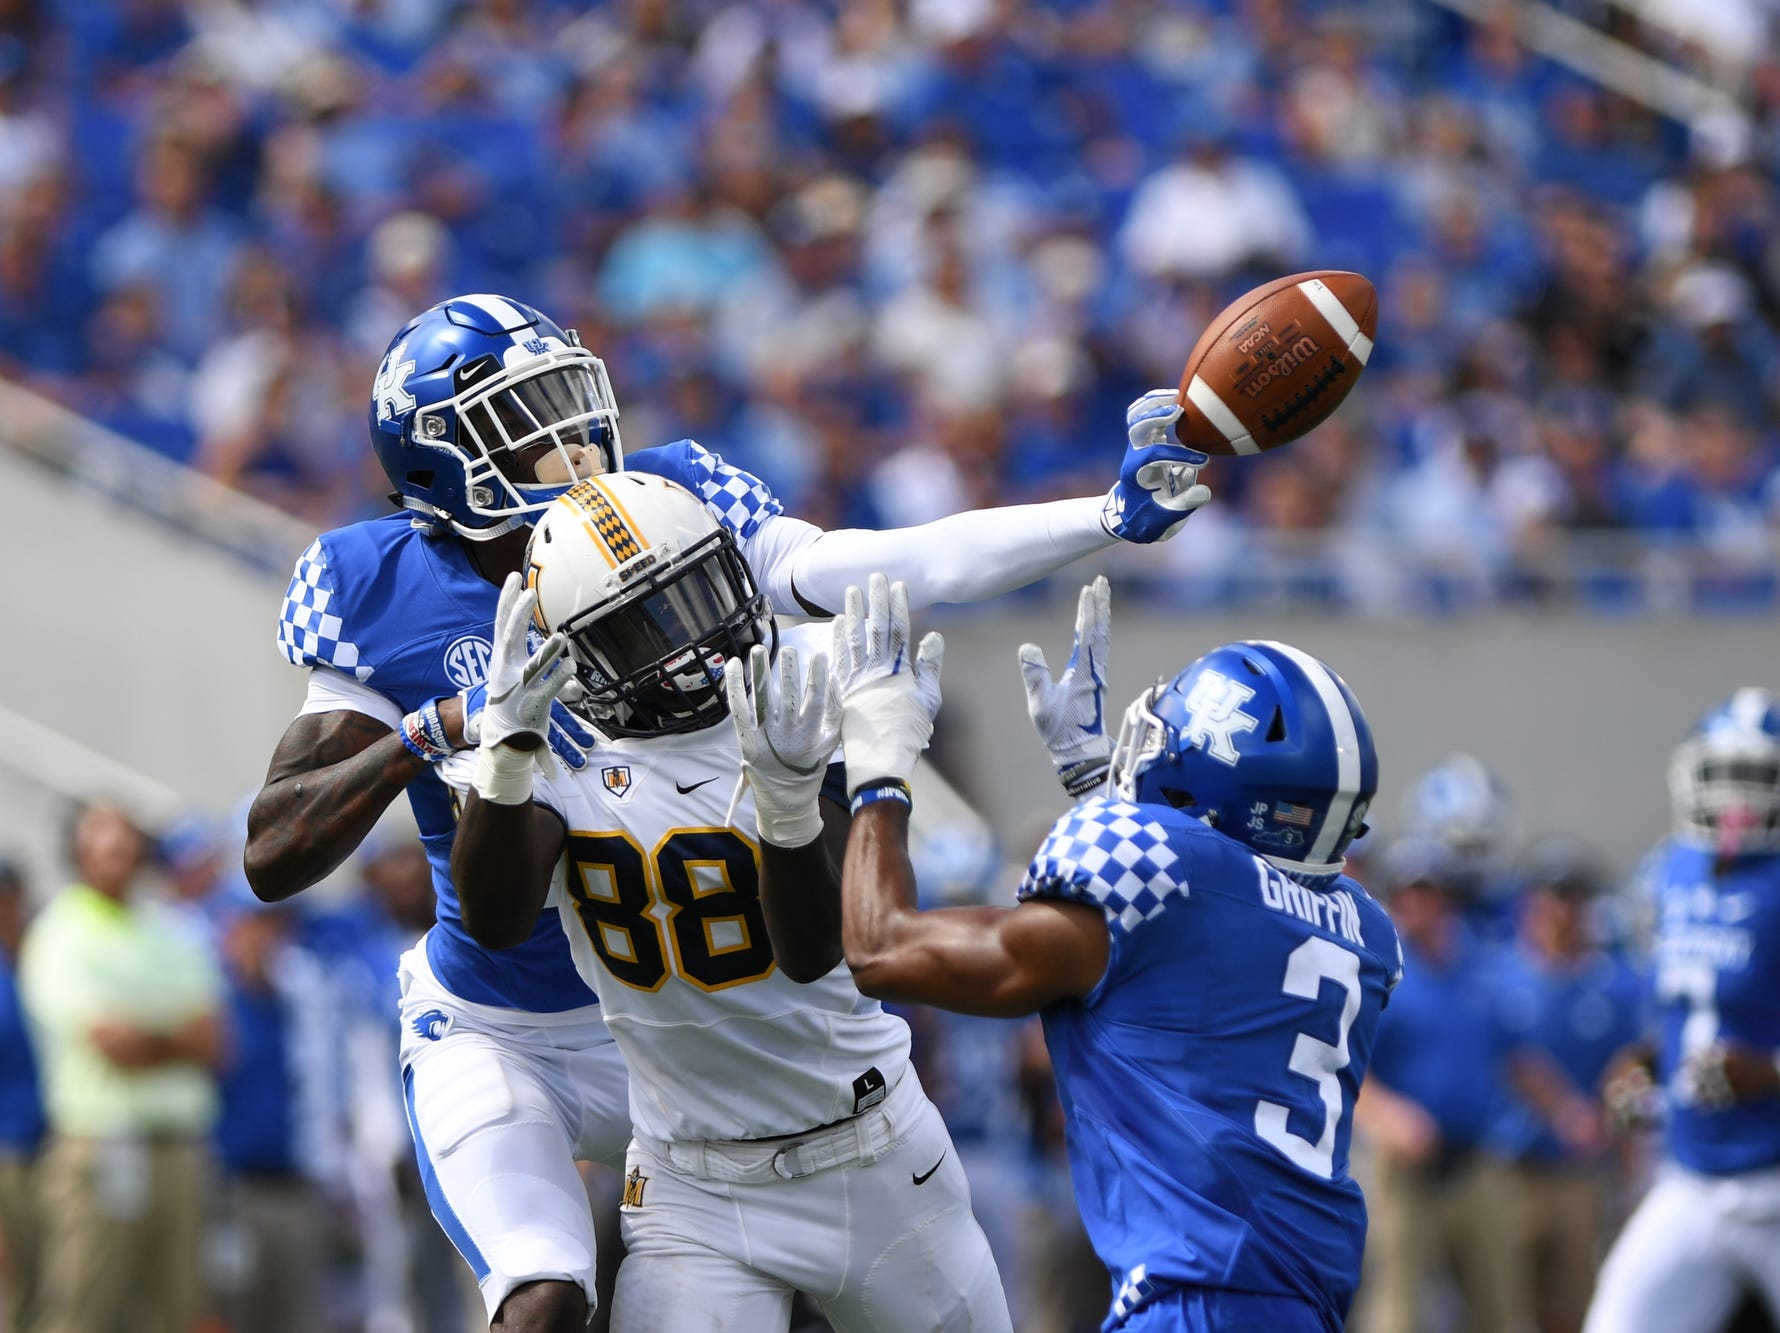 UK CB Chris Westry breaks up a pass but is called for pass interference during the University of Kentucky football game against Murray State at Kroger Field in Lexington, Kentucky on Saturday, September 15, 2018.